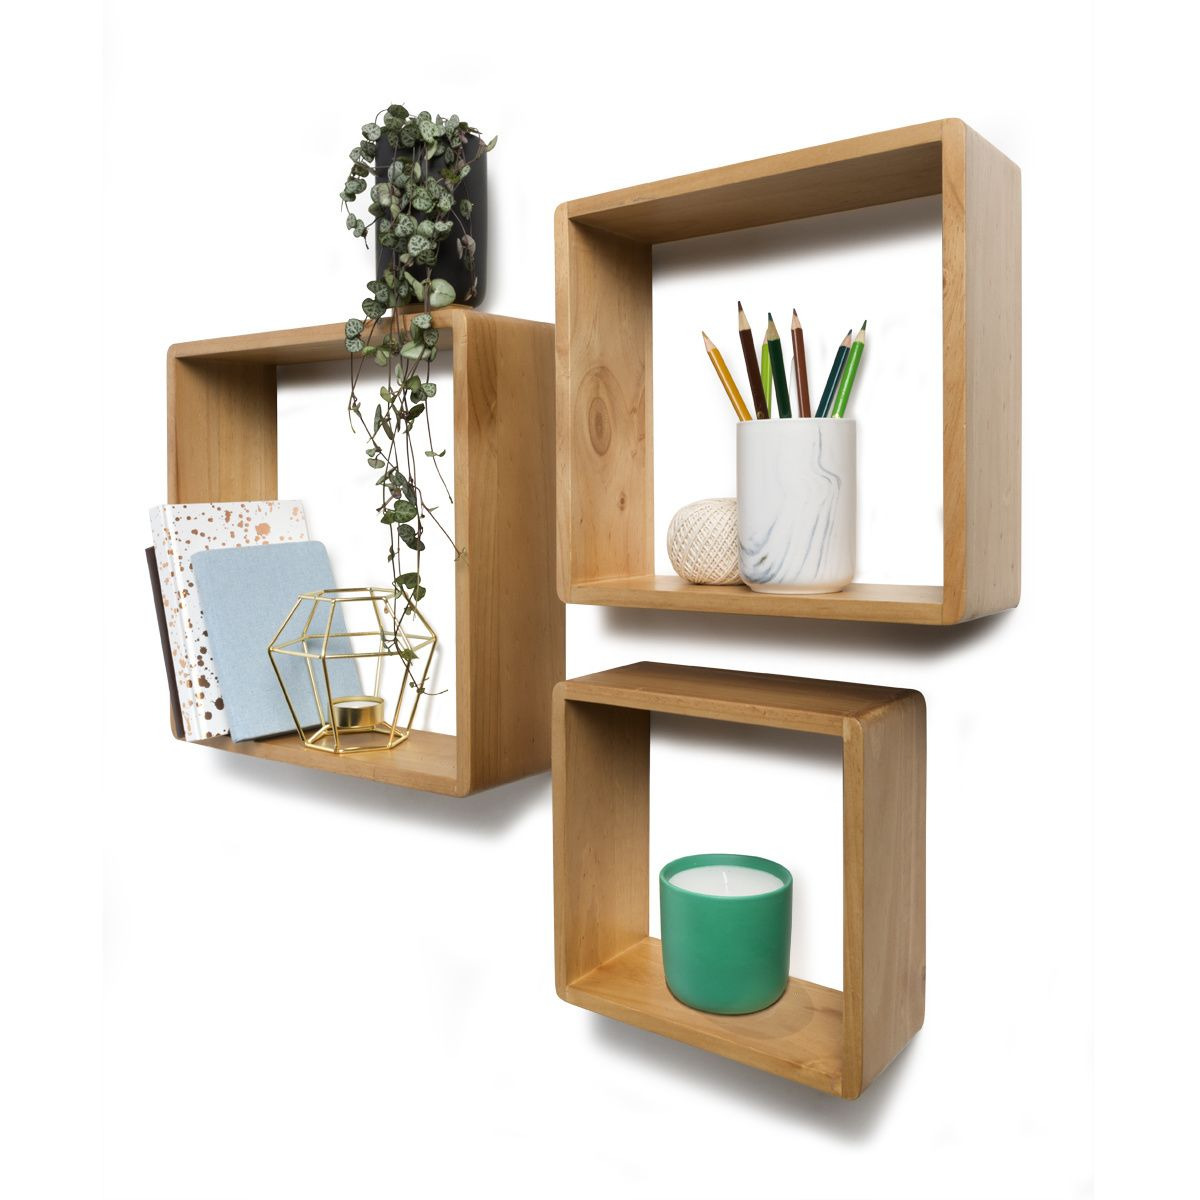 square wall shelves new house ideas floating kmart kmartnz garage hanging system retro corner shelf desk towel rail with design glass shelving unit contemporary bookshelf ikea